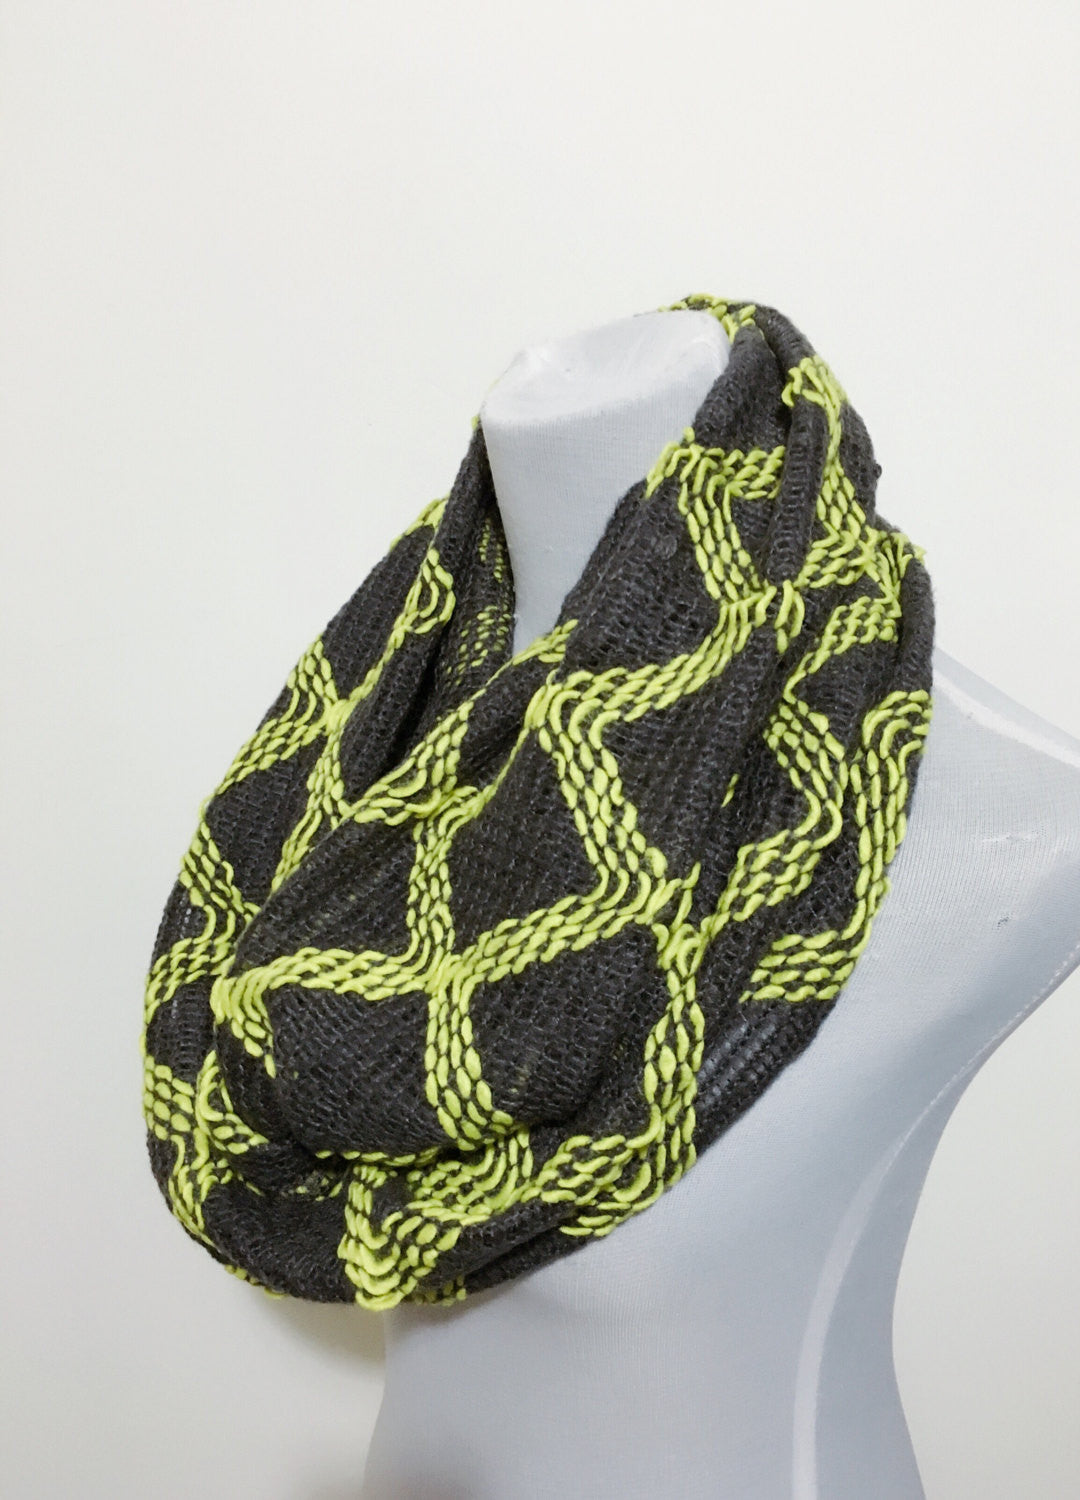 Atez Knitted Scarf - Bean Concept - Etsy